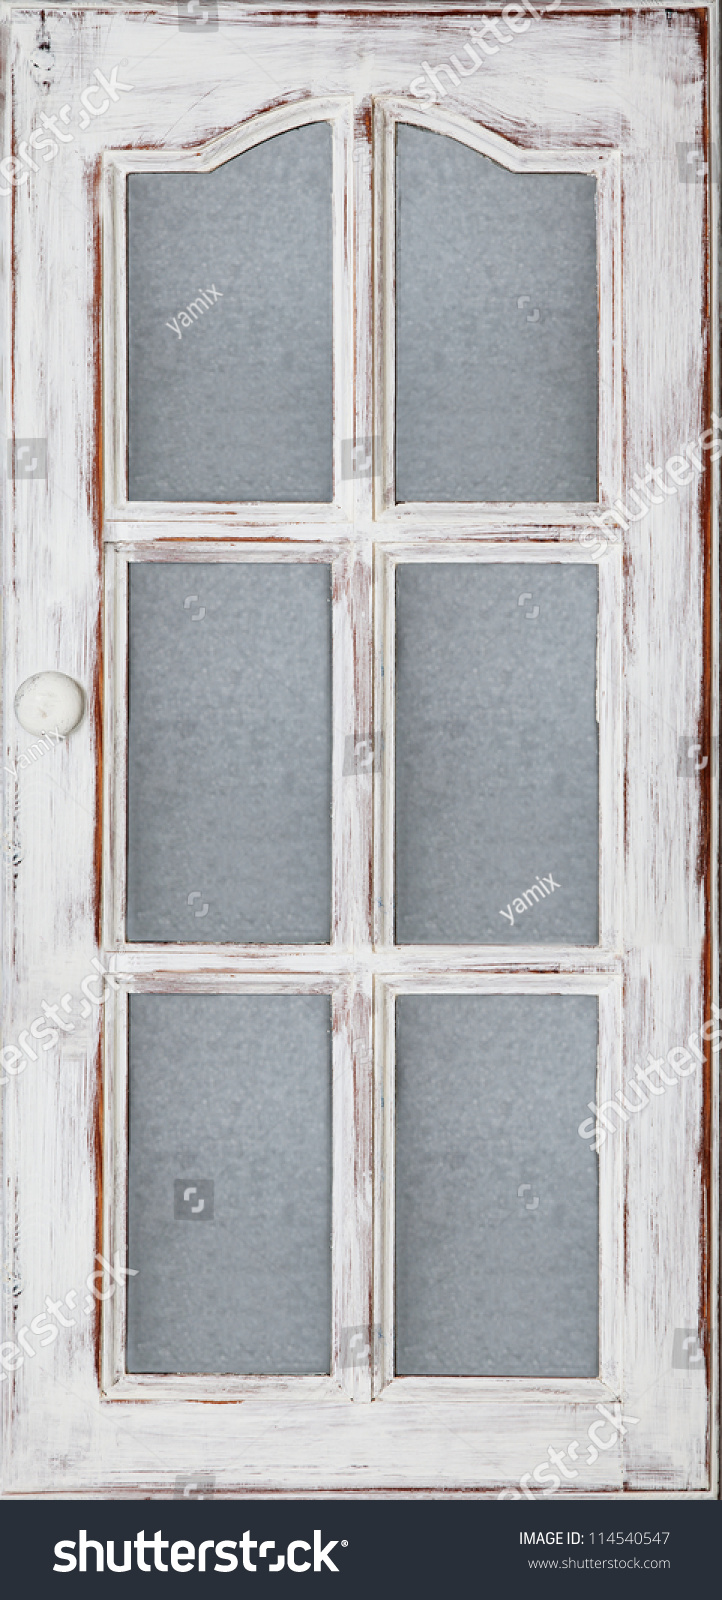 An old wood door panel with glass white paint and grunge for Wood doors painted white